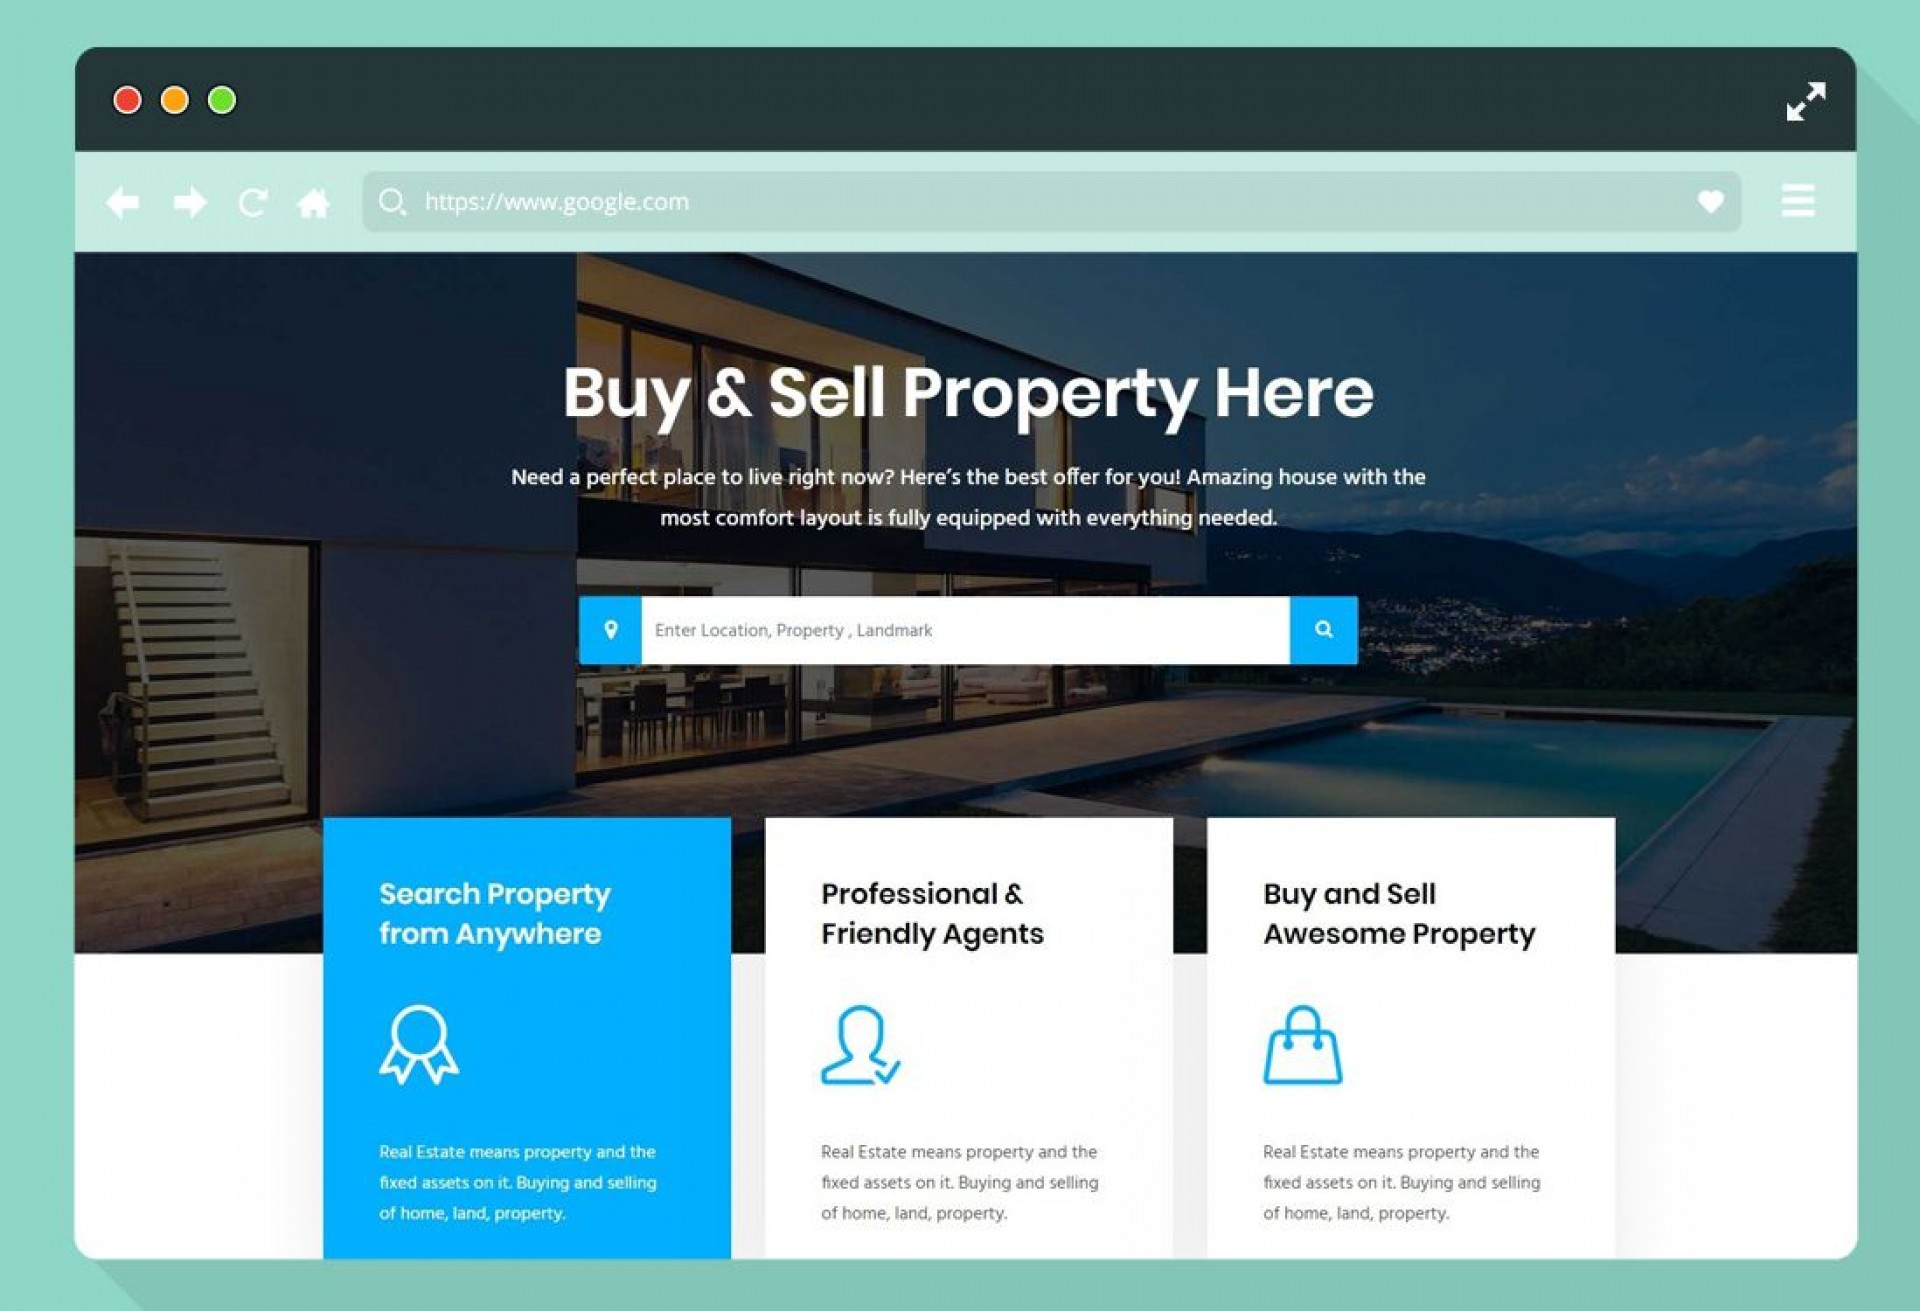 013 Fearsome Real Estate Website Template High Definition  Templates Bootstrap Free Html5 Best Wordpres1920